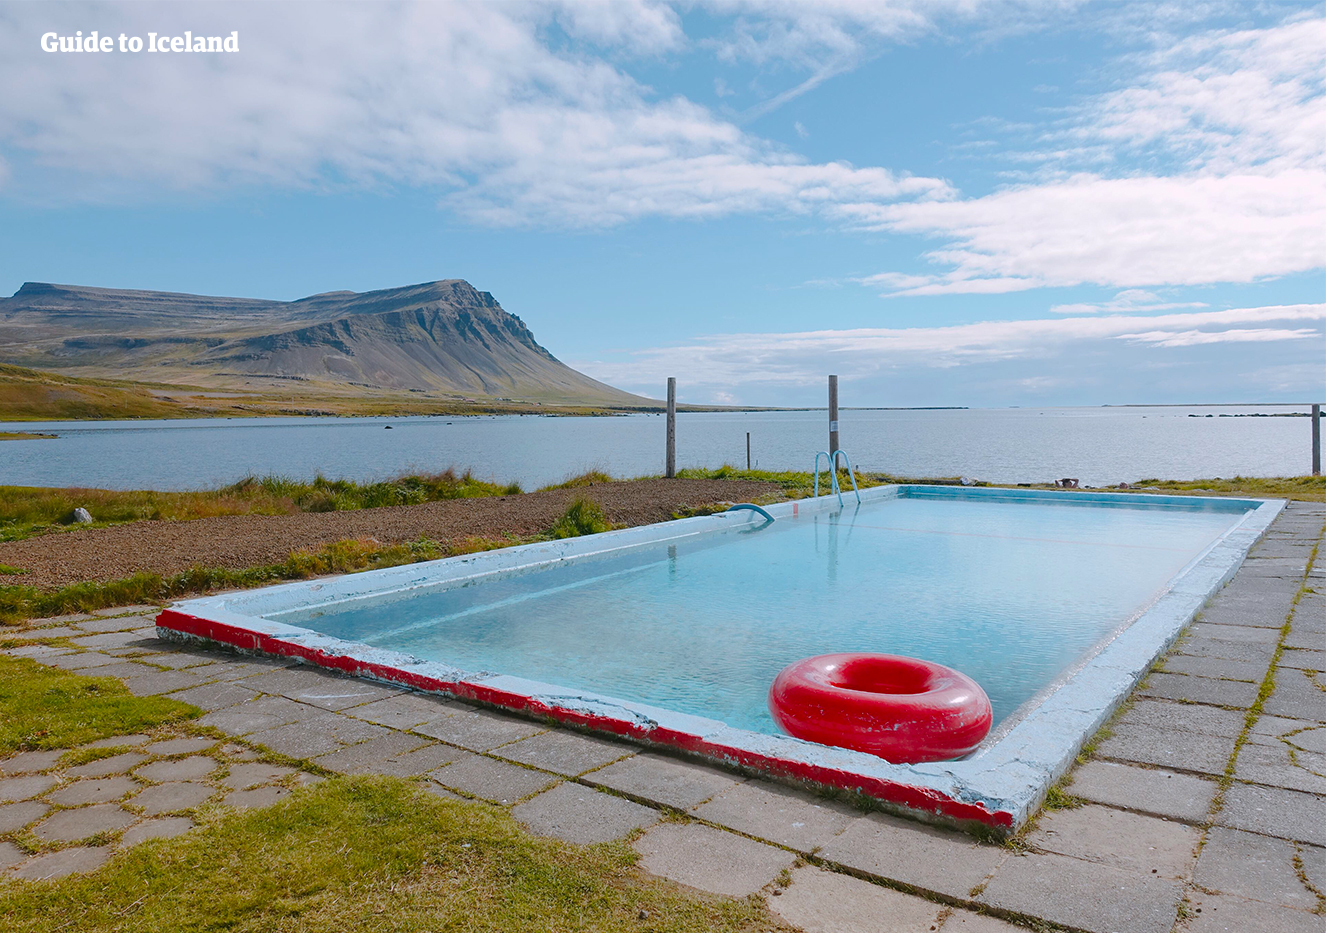 The swimming pool, Birkimelur, is located in Patreksfjordur in the Westfjords